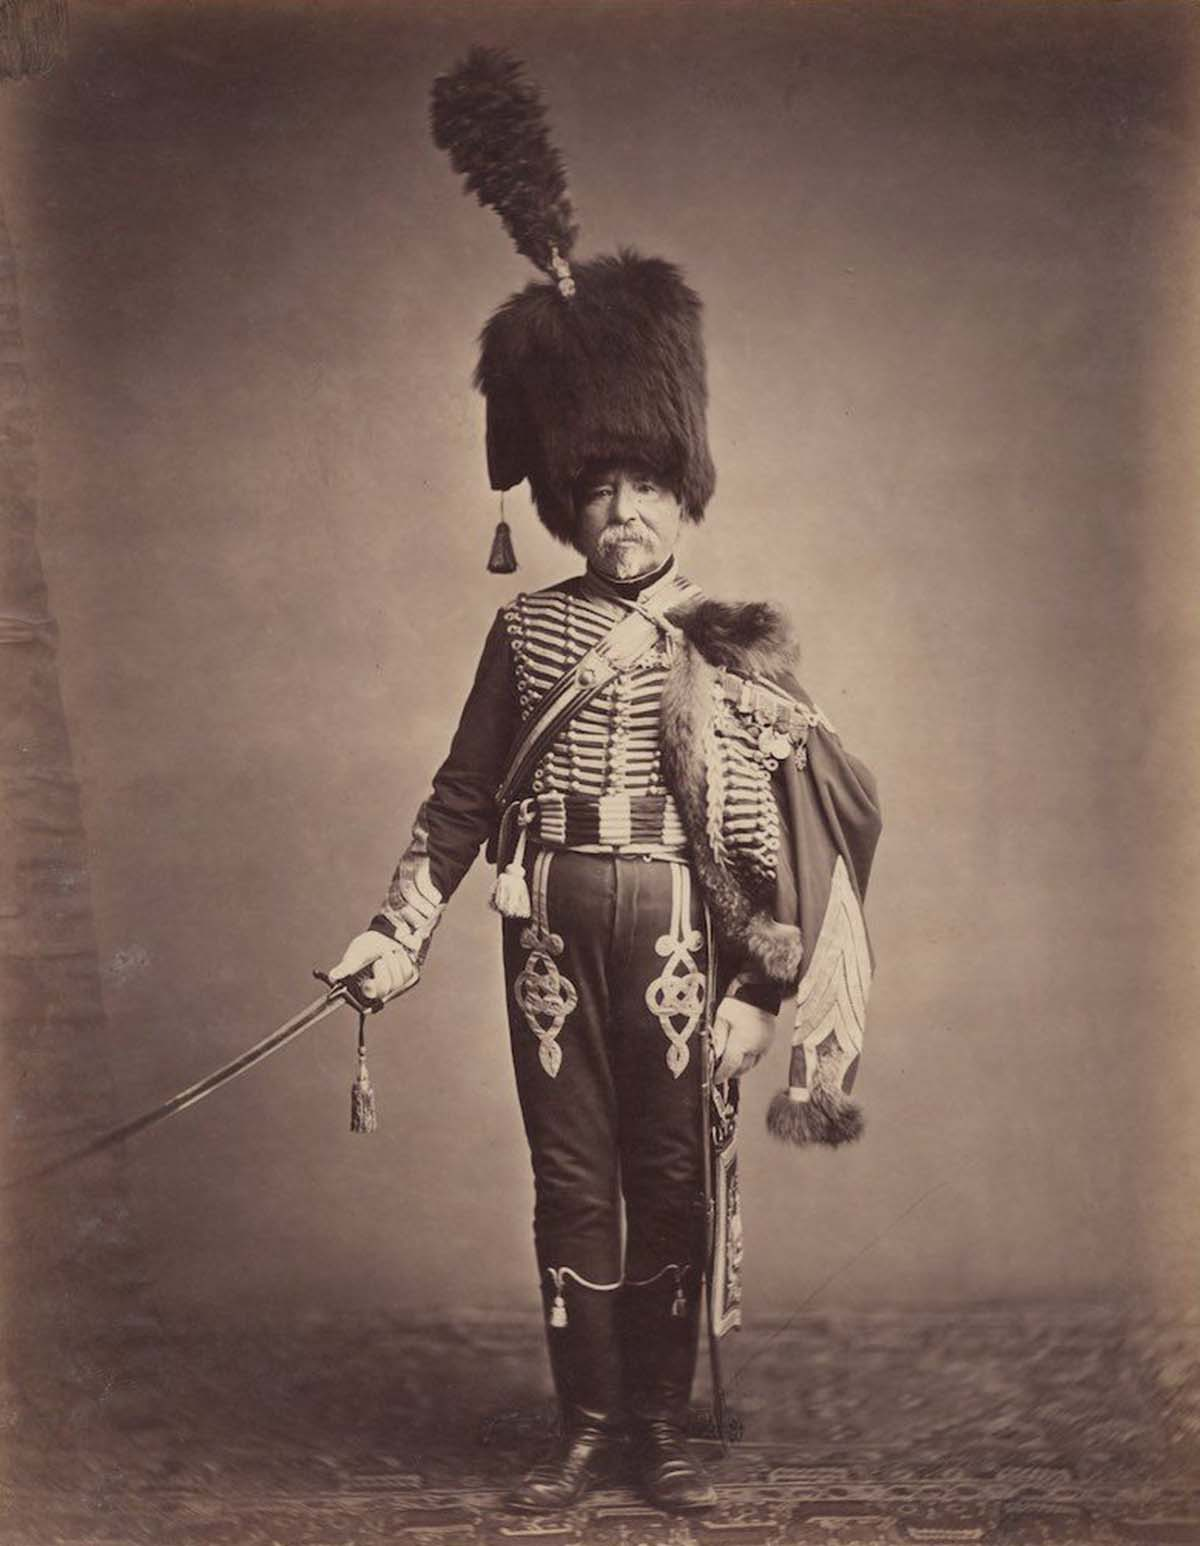 Quartermaster Fabry of the 1st Hussars.